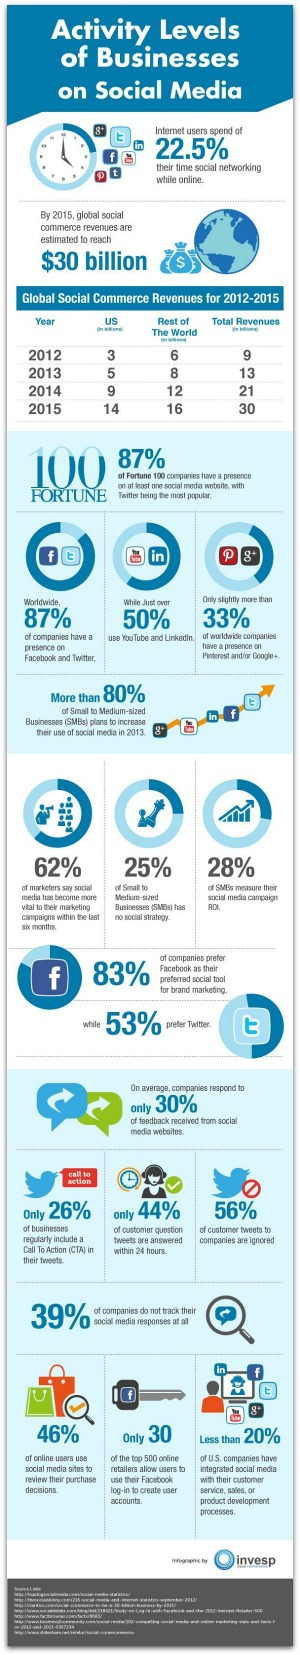 How_Businesses_Use_Social_Media_Infographic